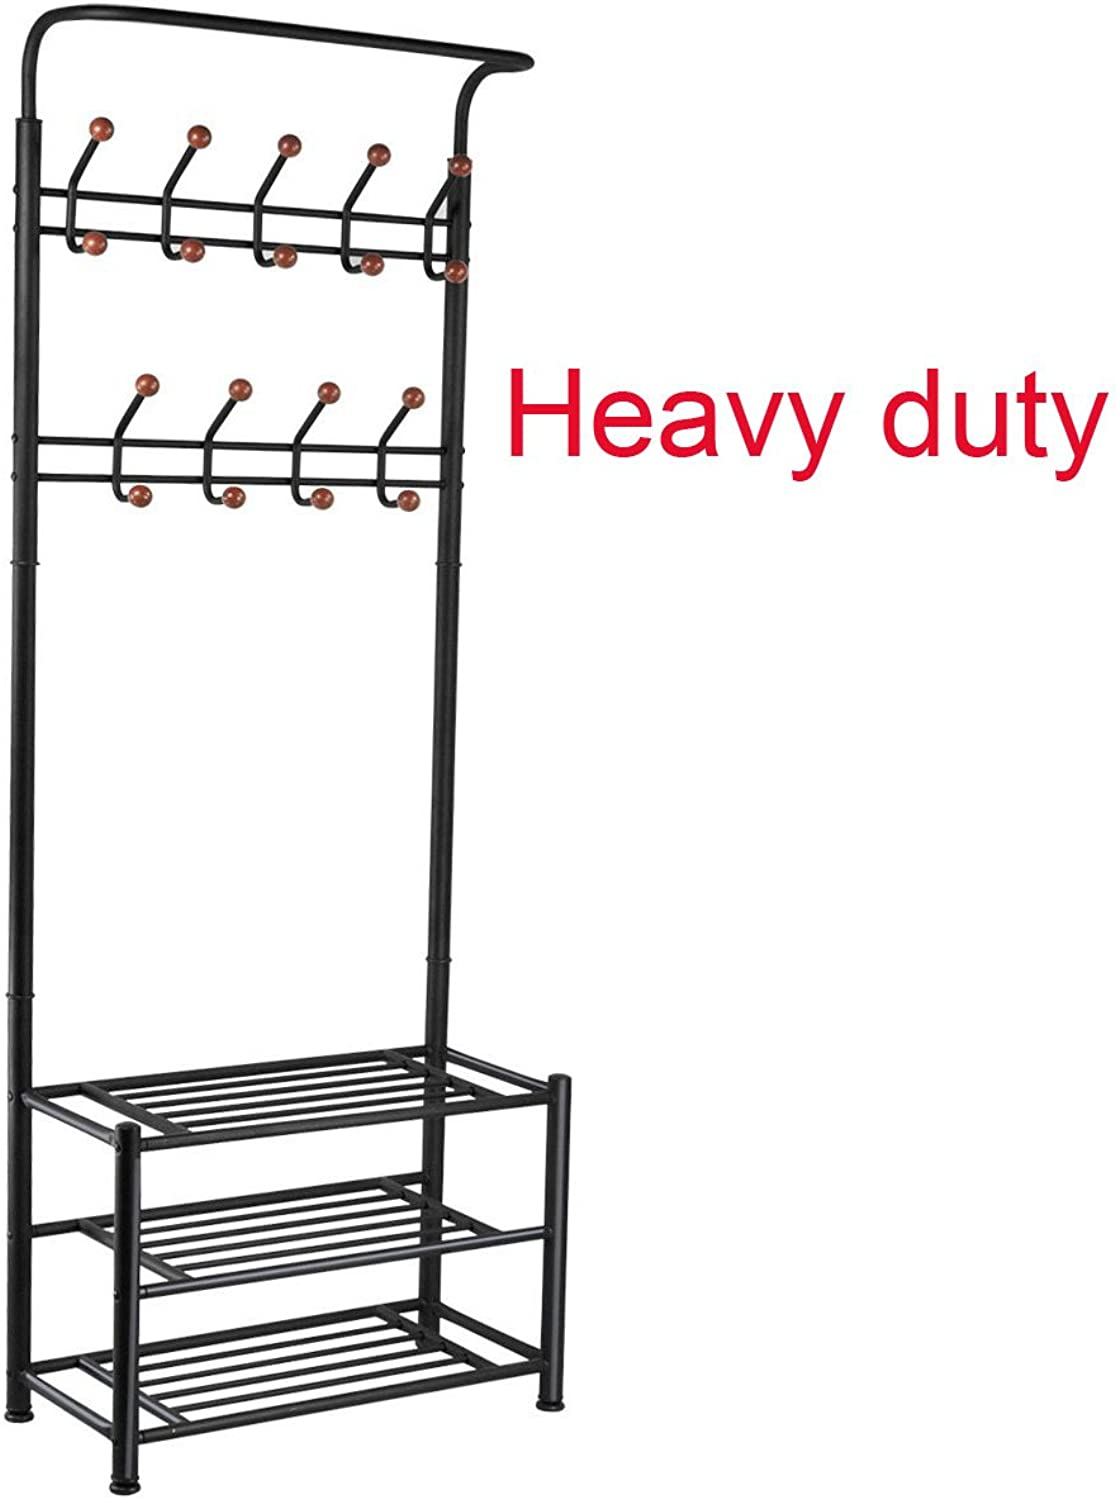 FYHEART Heavy Duty Coat shoes Entryway Rack with 3-Tier shoes Bench Shelves Organizer with Coat Hat Umbrella Rack 18 Hooks for Hallway Entryway Metal, Black